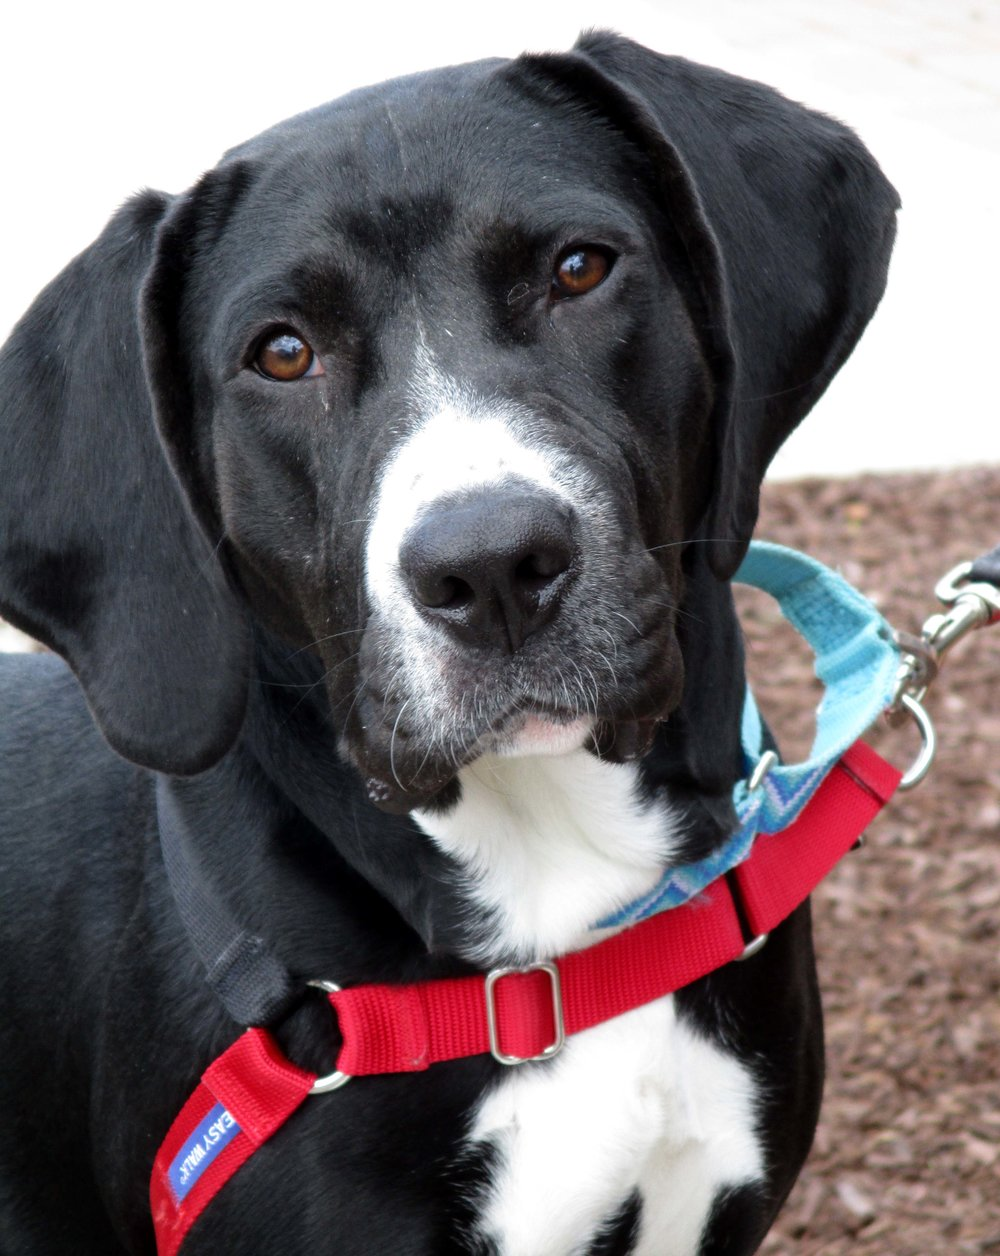 Rosie is a 2 year old Lab and Coonhound mix. She is restricted to houses with children 16 and older due to her high energy level which causes her to jump in excitement. As she gets more excited she can become mouthy. She is not good with cats, but may do okay with another dog. Rosie loves food and toys. If you want to meet her, please call in as she is in a foster home and can be viewed by appointment.